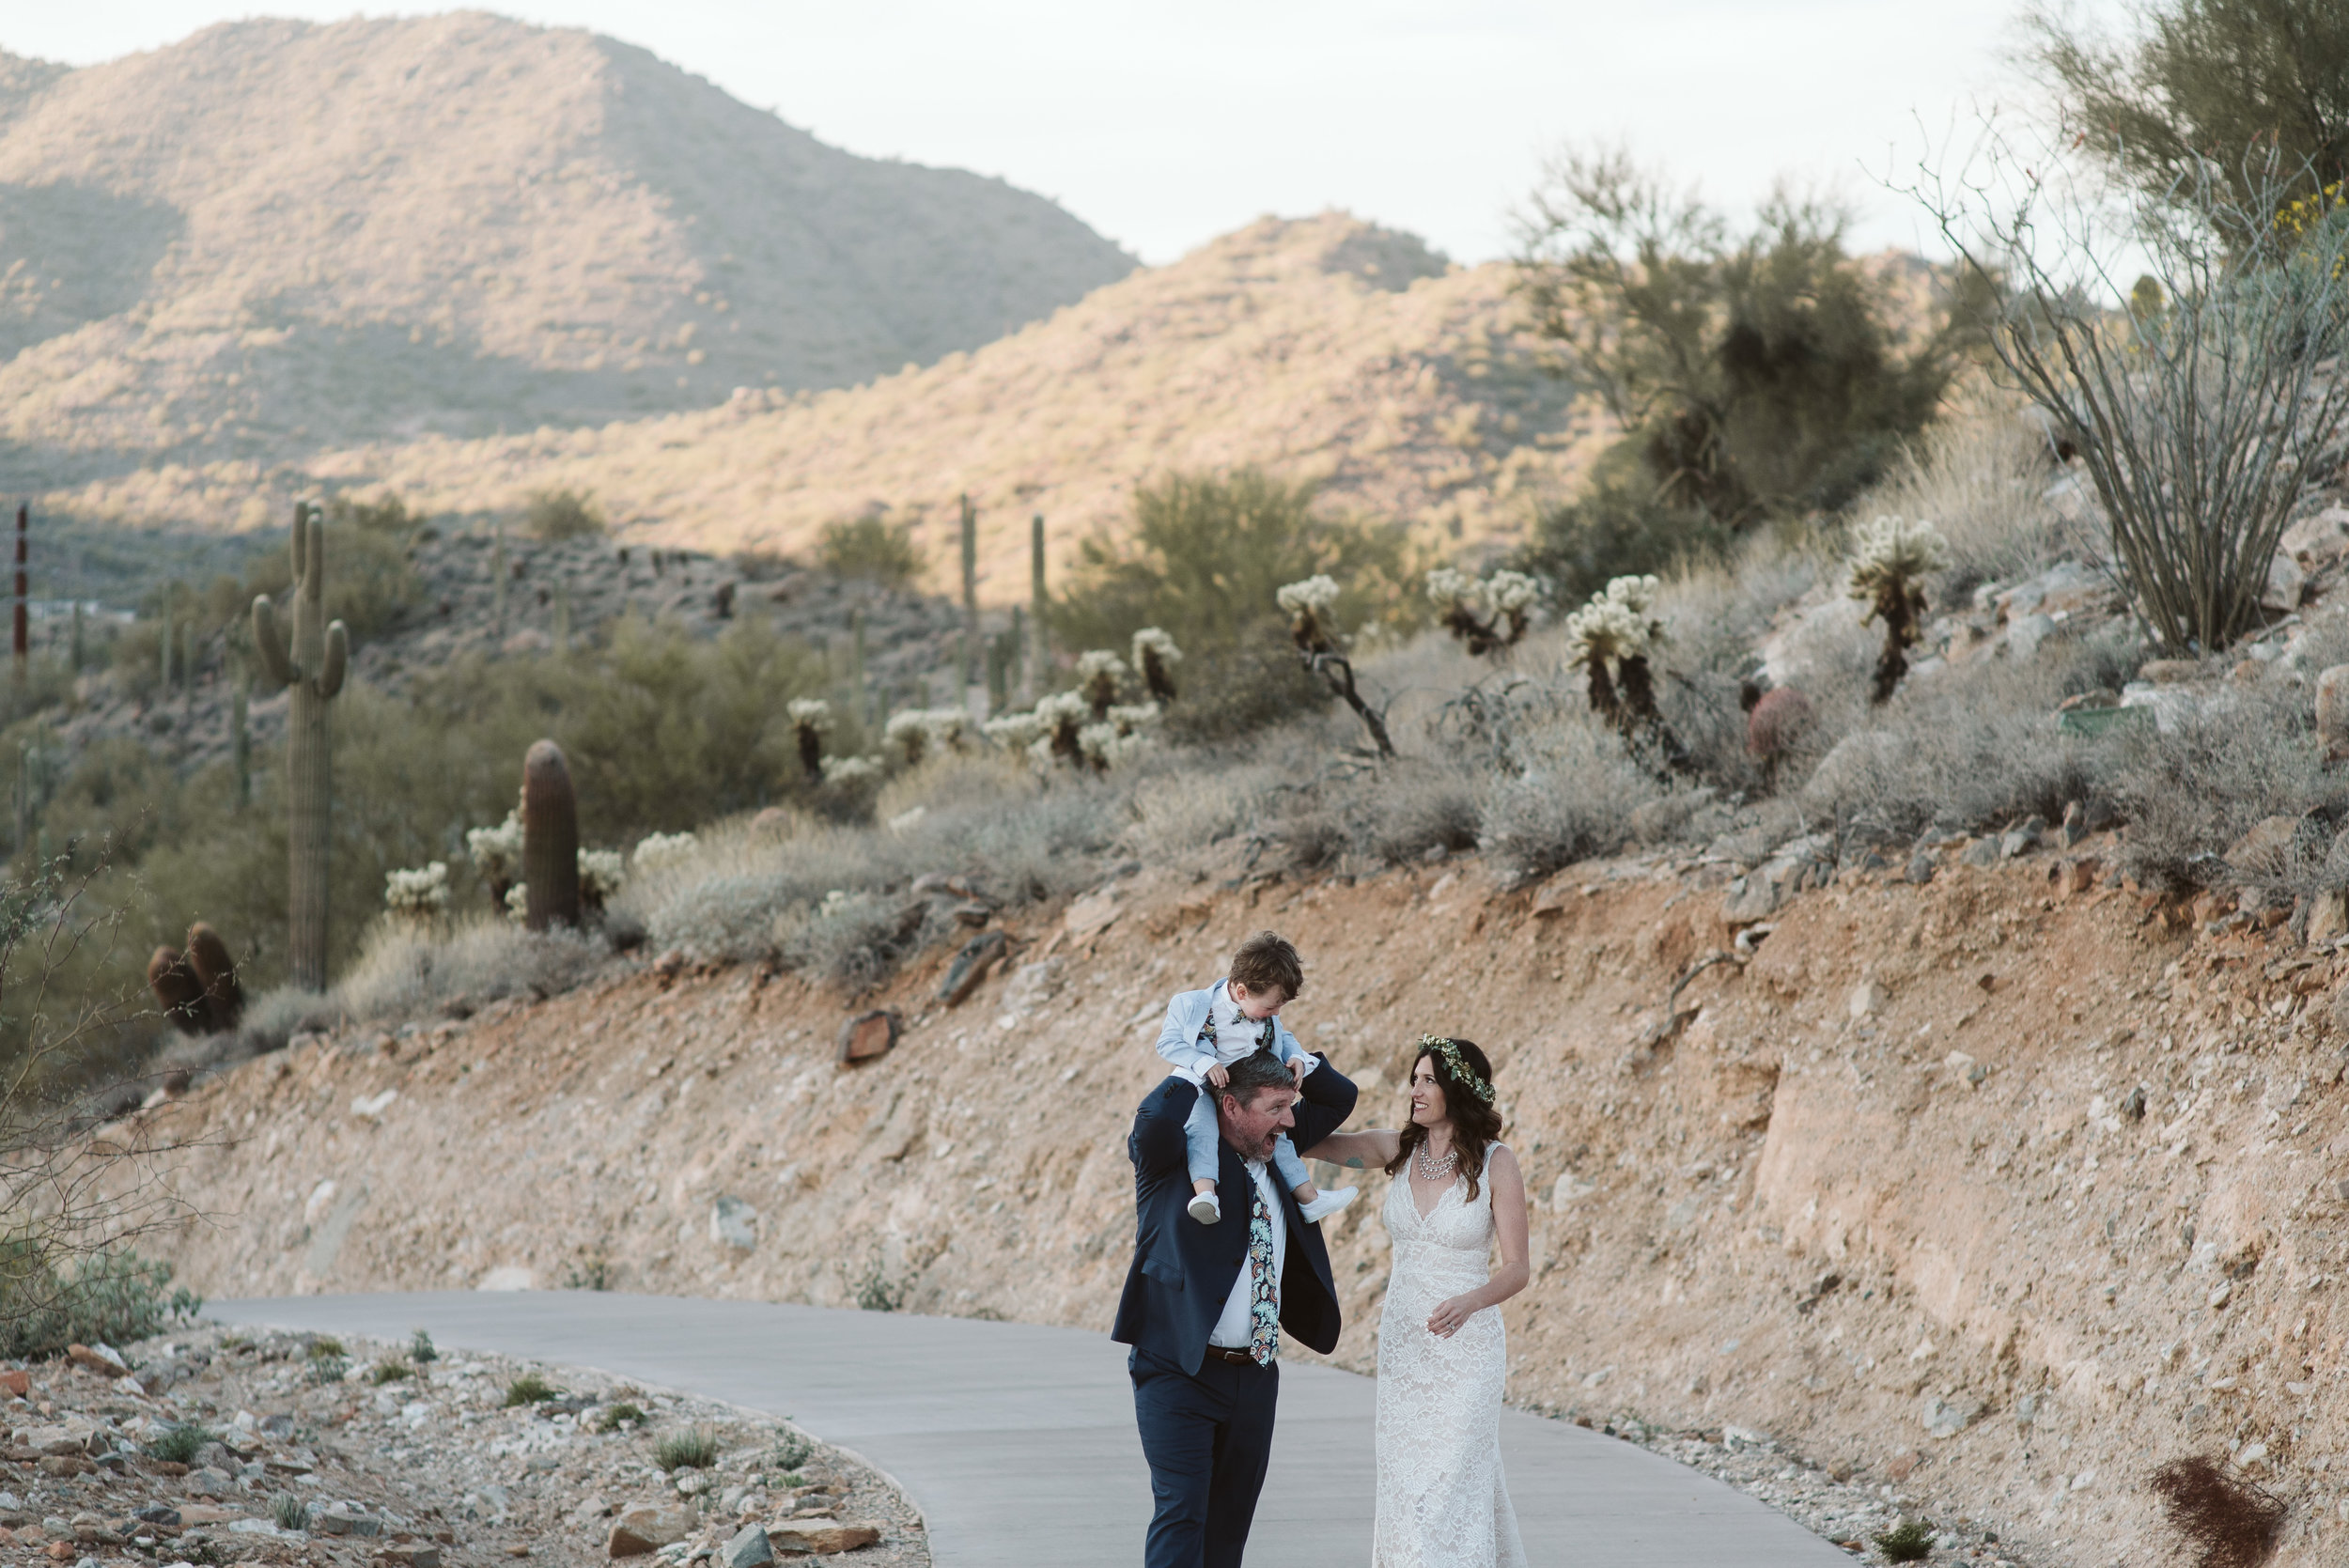 ArizonaWeddingPhotographer_Schad_0774.jpg